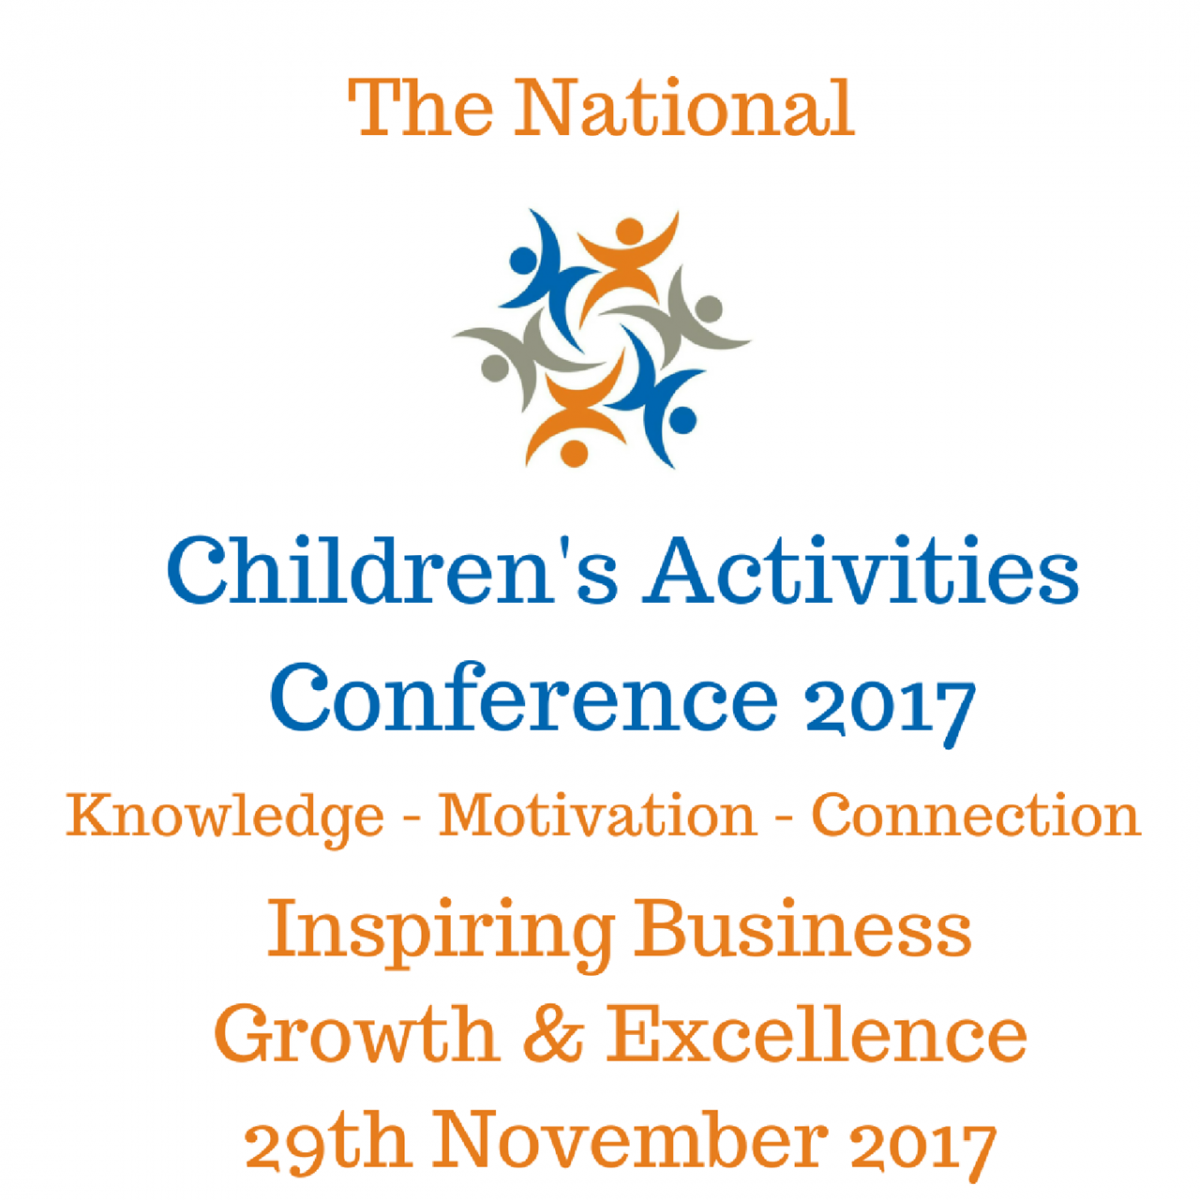 National Children's Activities Conference 2017